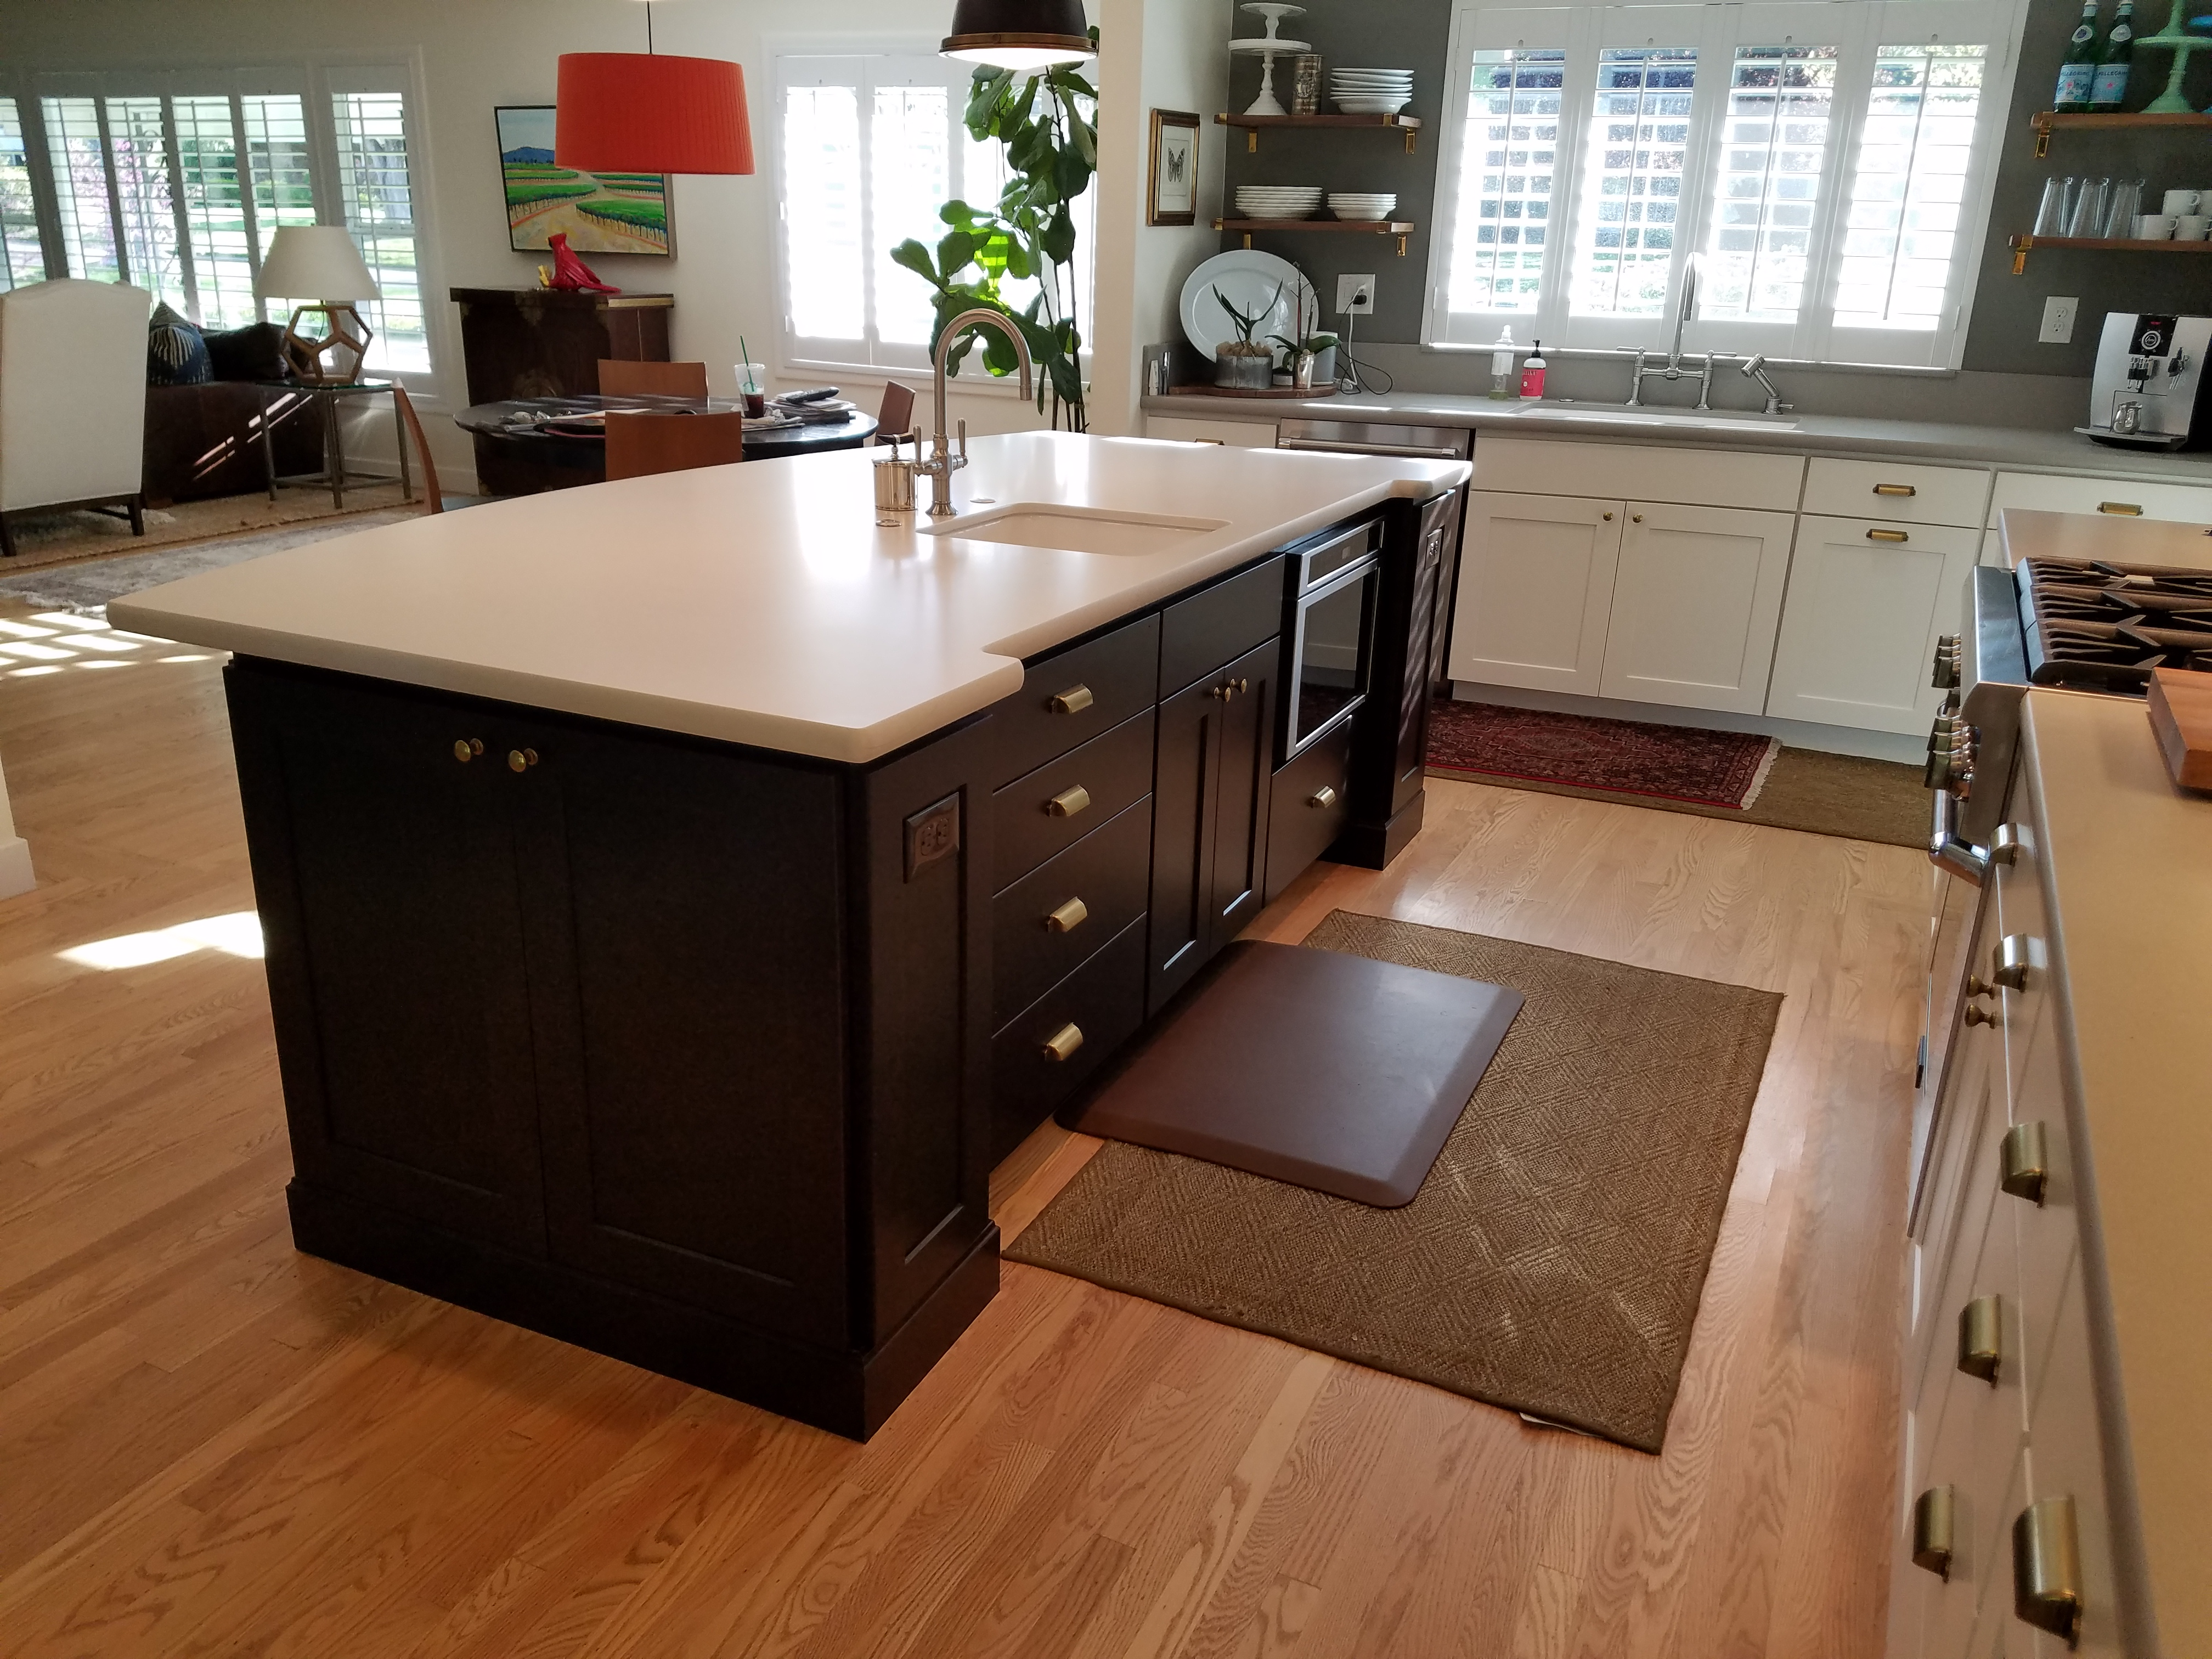 Kitchen Island with dark brown cabinets and cream countertop